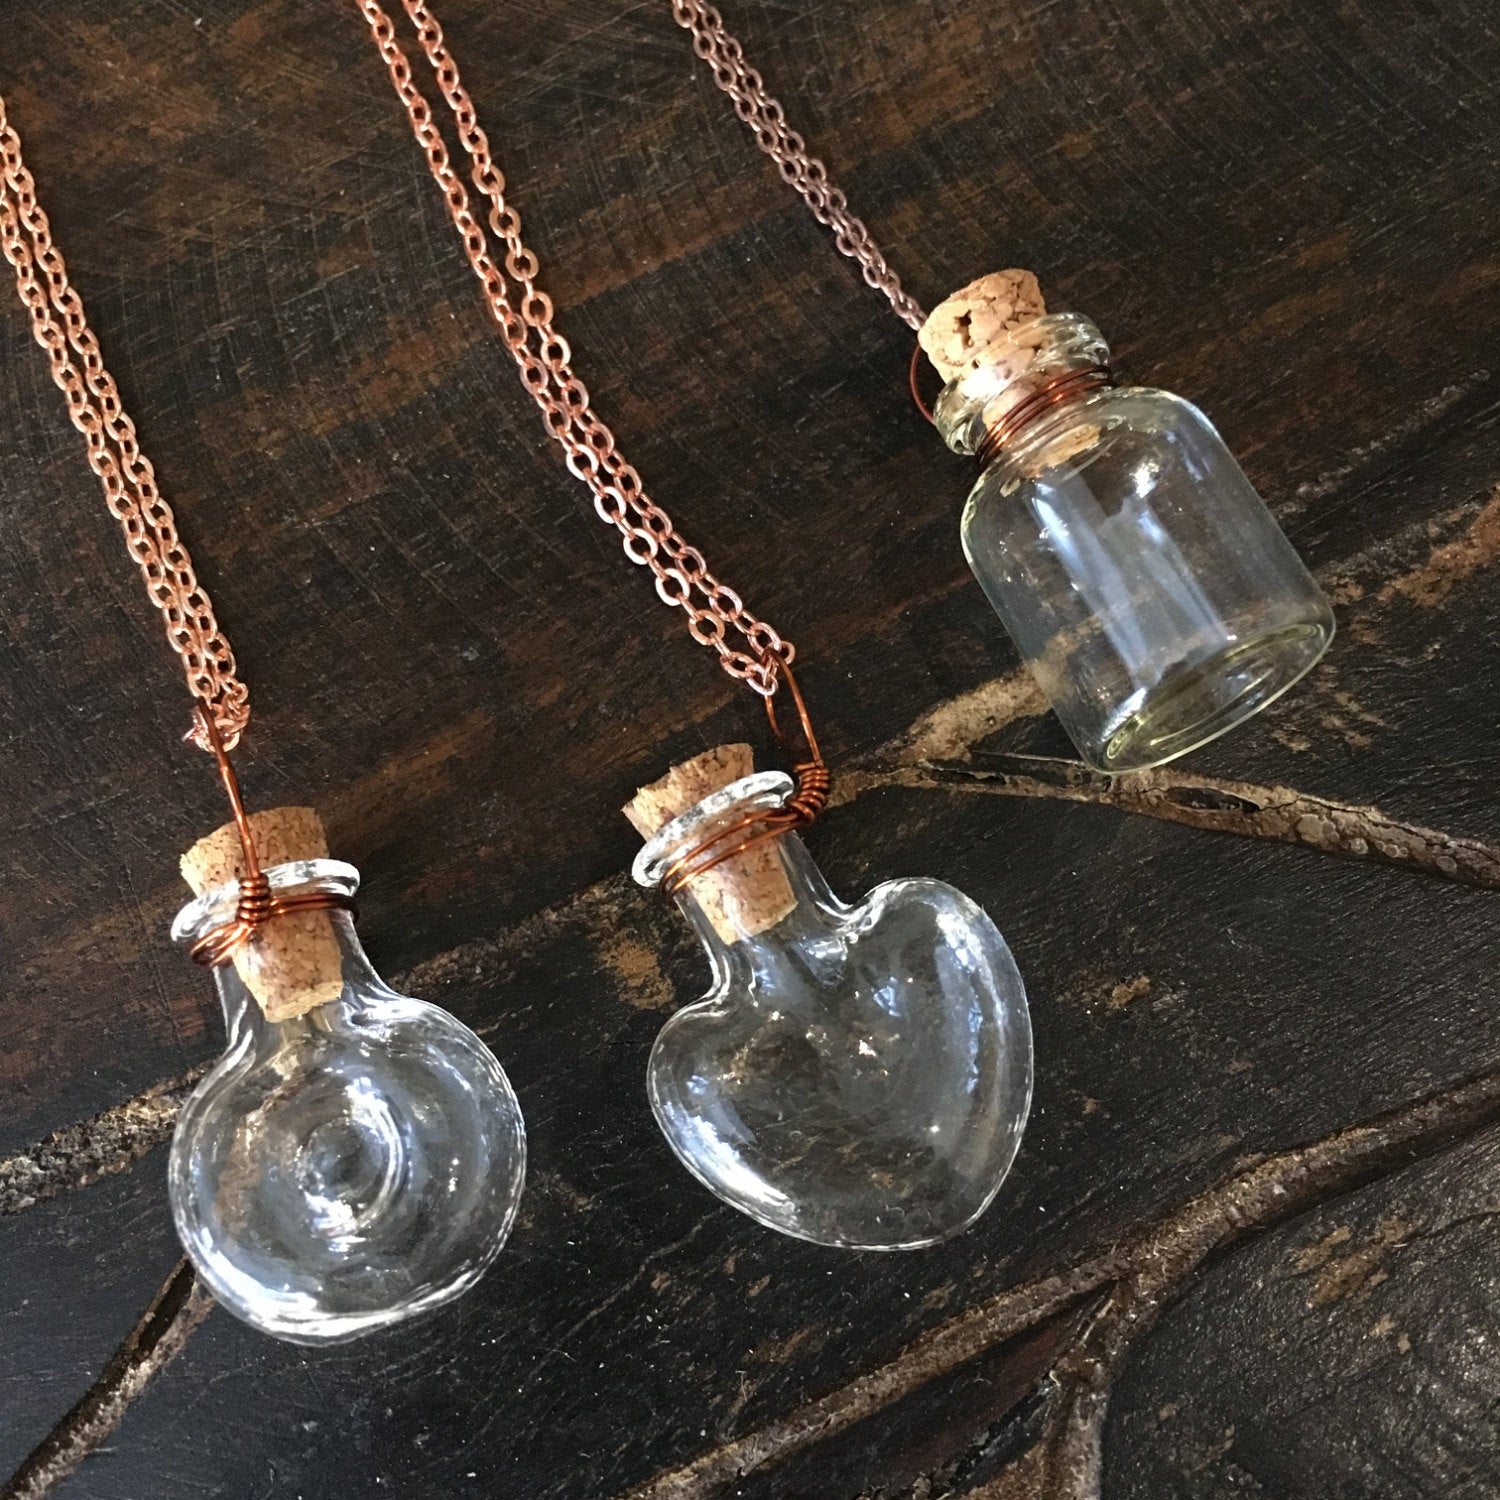 Miniature Bottle necklace, bottle pendant necklace, rose gold chain, Vial Necklace, heart pendant, Layering Necklace, BFF Gift - AFN 104 1-3